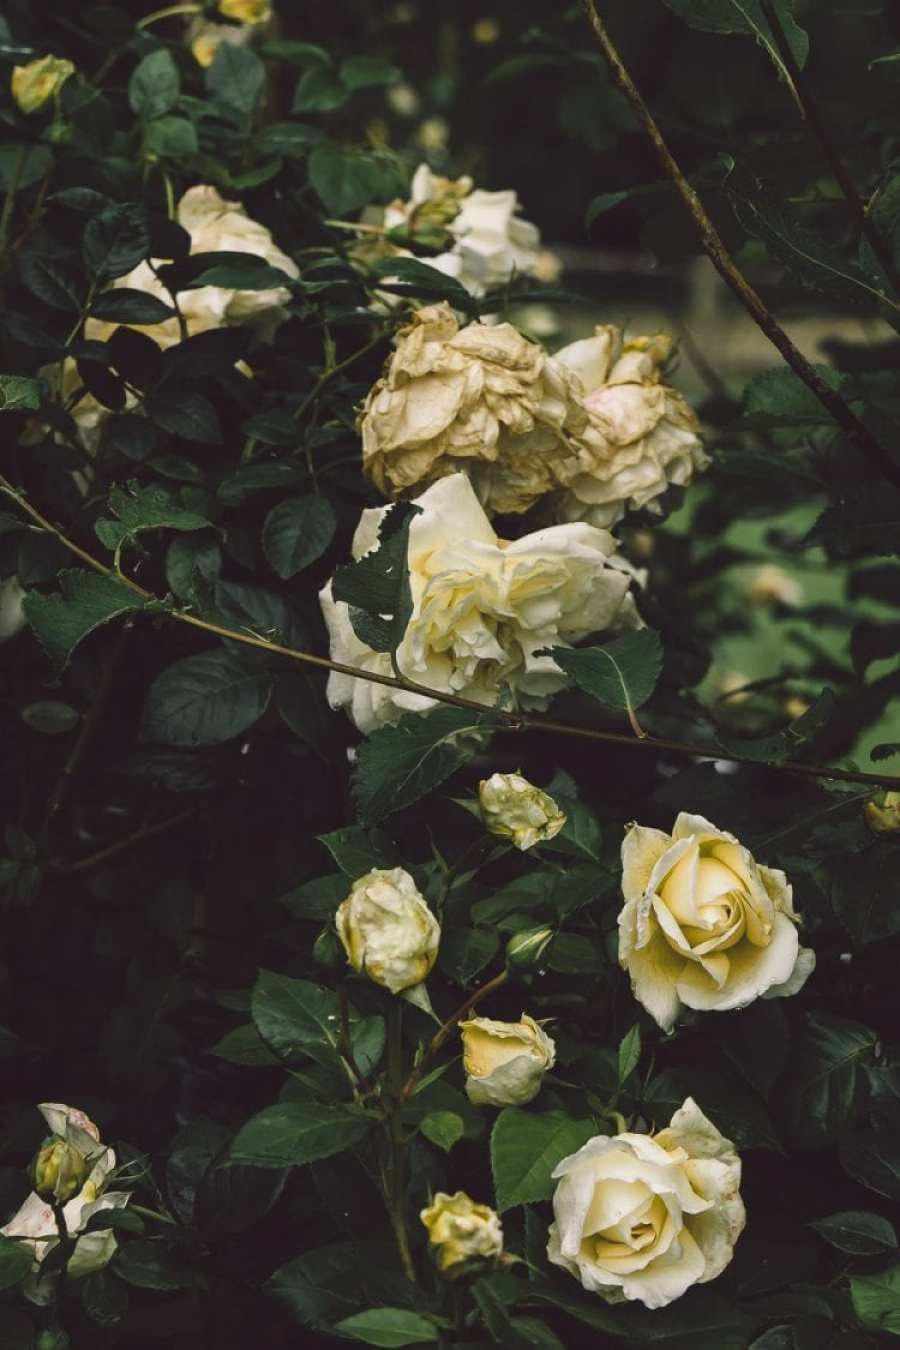 Yellow roses and rain